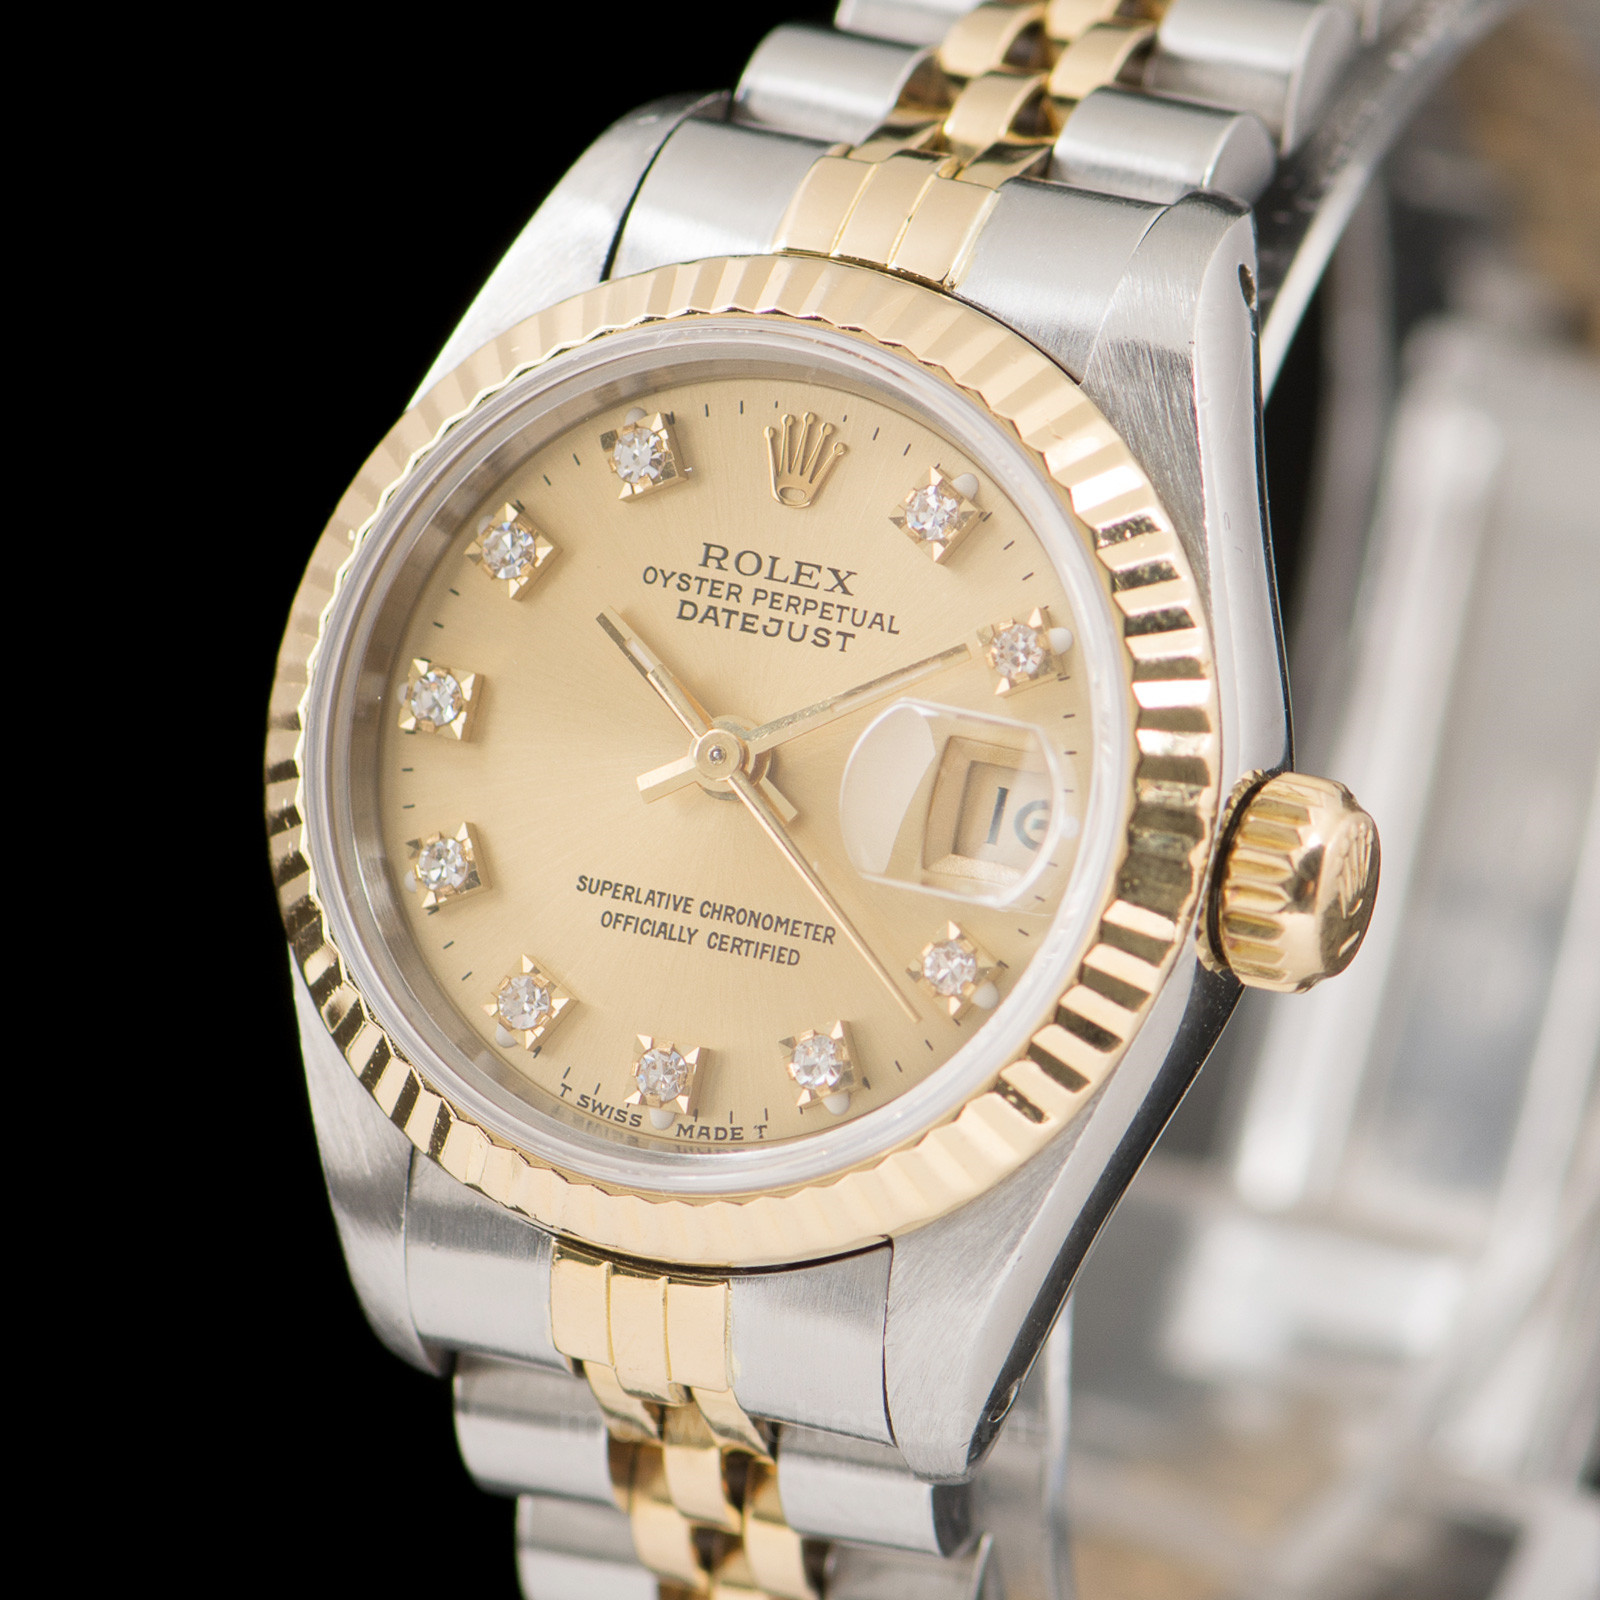 rolex oyster perpetual datejust ref 69173 diamonds 26mm md watches. Black Bedroom Furniture Sets. Home Design Ideas